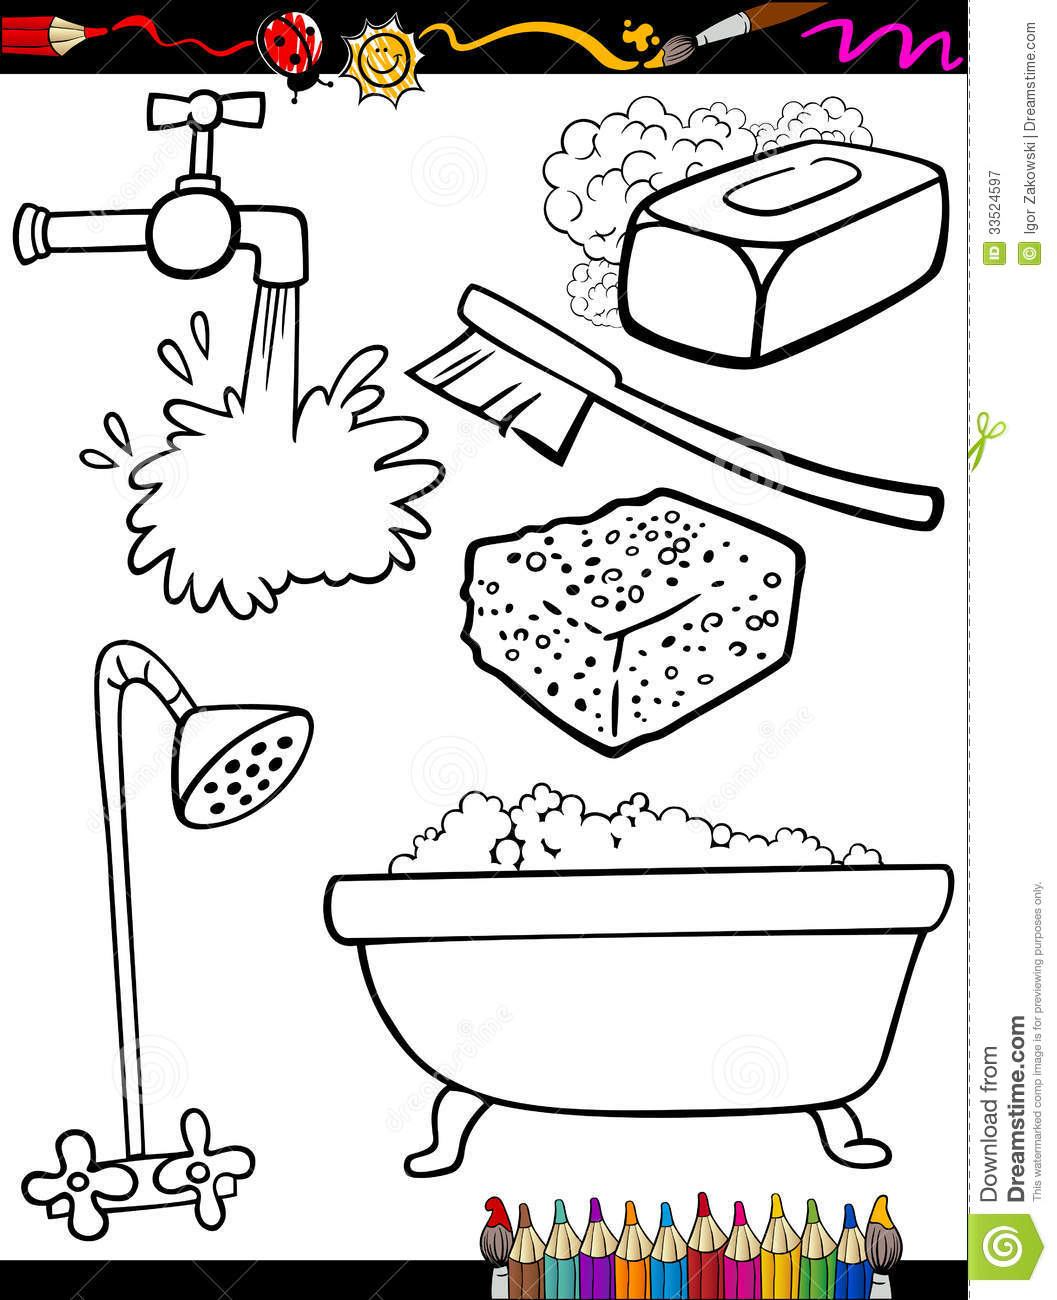 Cartoon Hygiene Objects Coloring Page Royalty Free Stock Photography